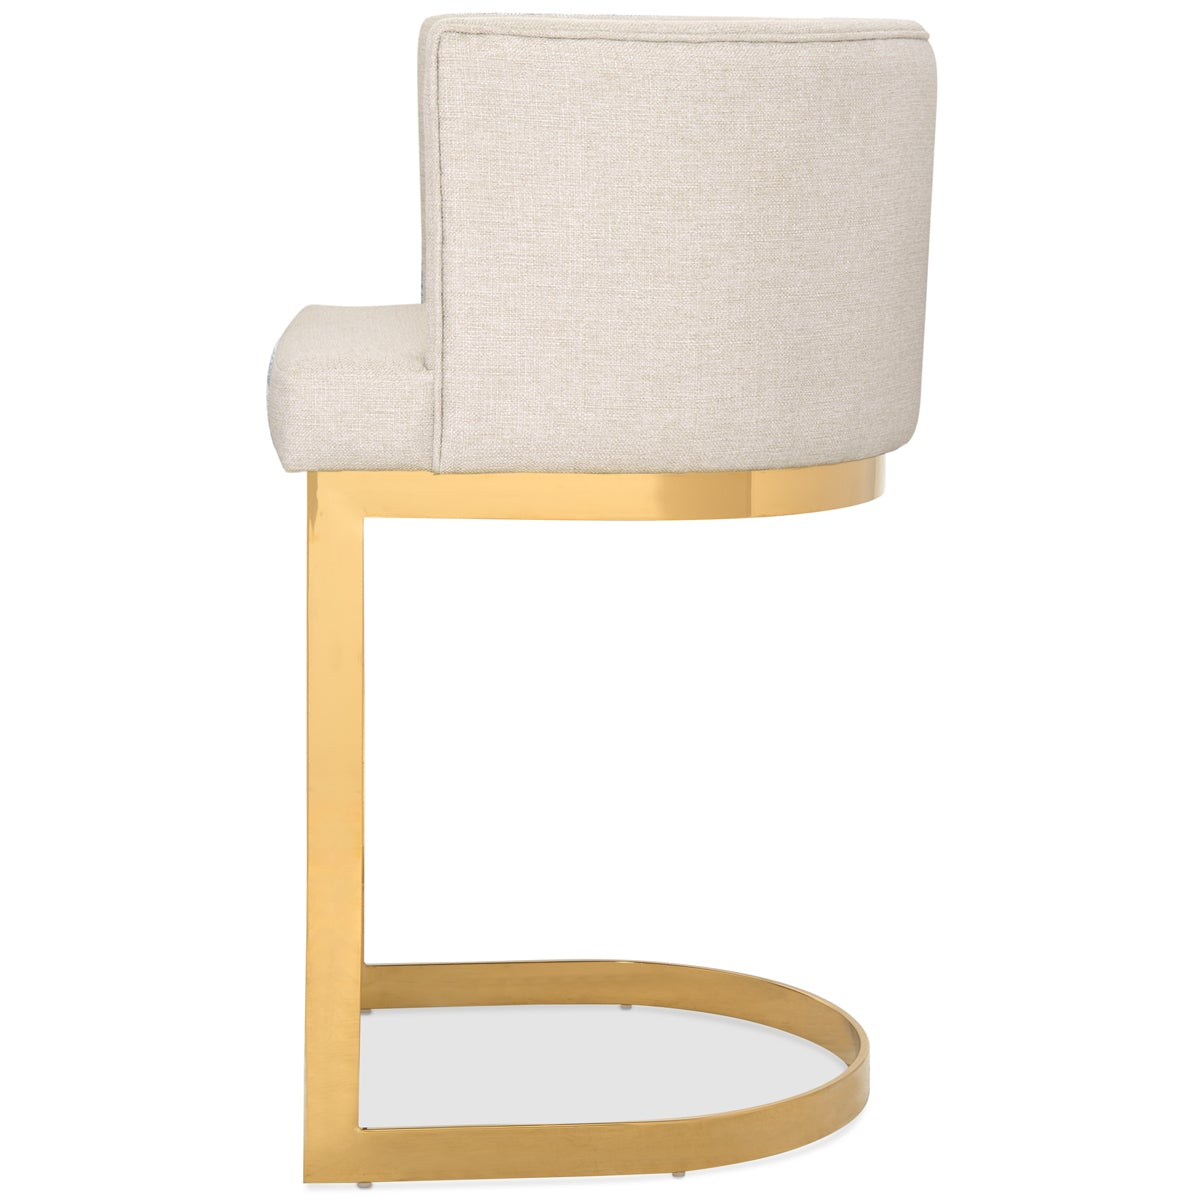 Ibiza Bar and Counter Stool in Linen - ModShop1.com